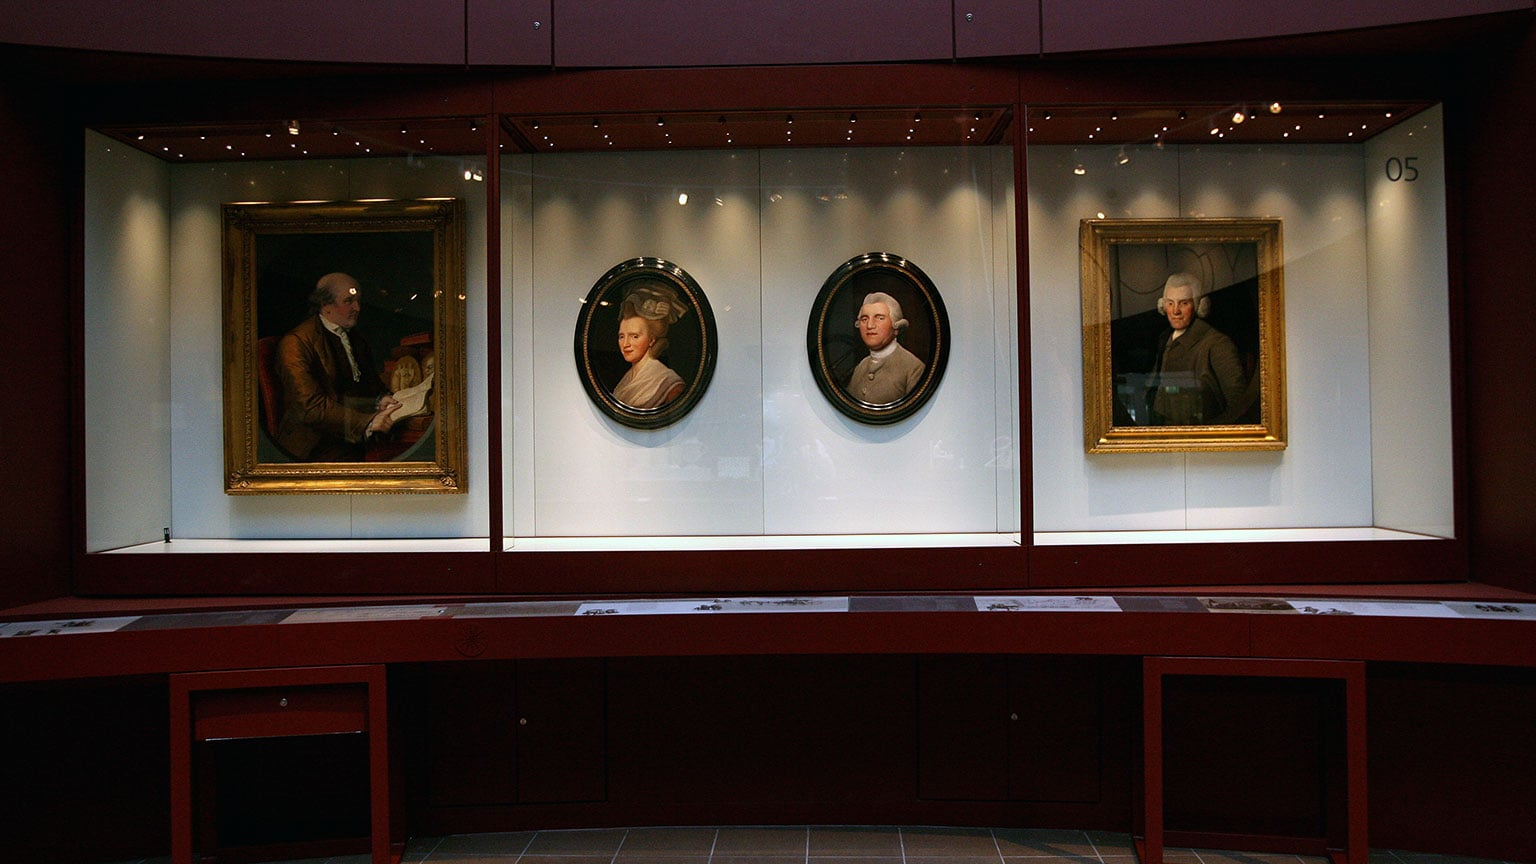 The Wedgwood Collection includes many works of fine art, such as portraits of the family